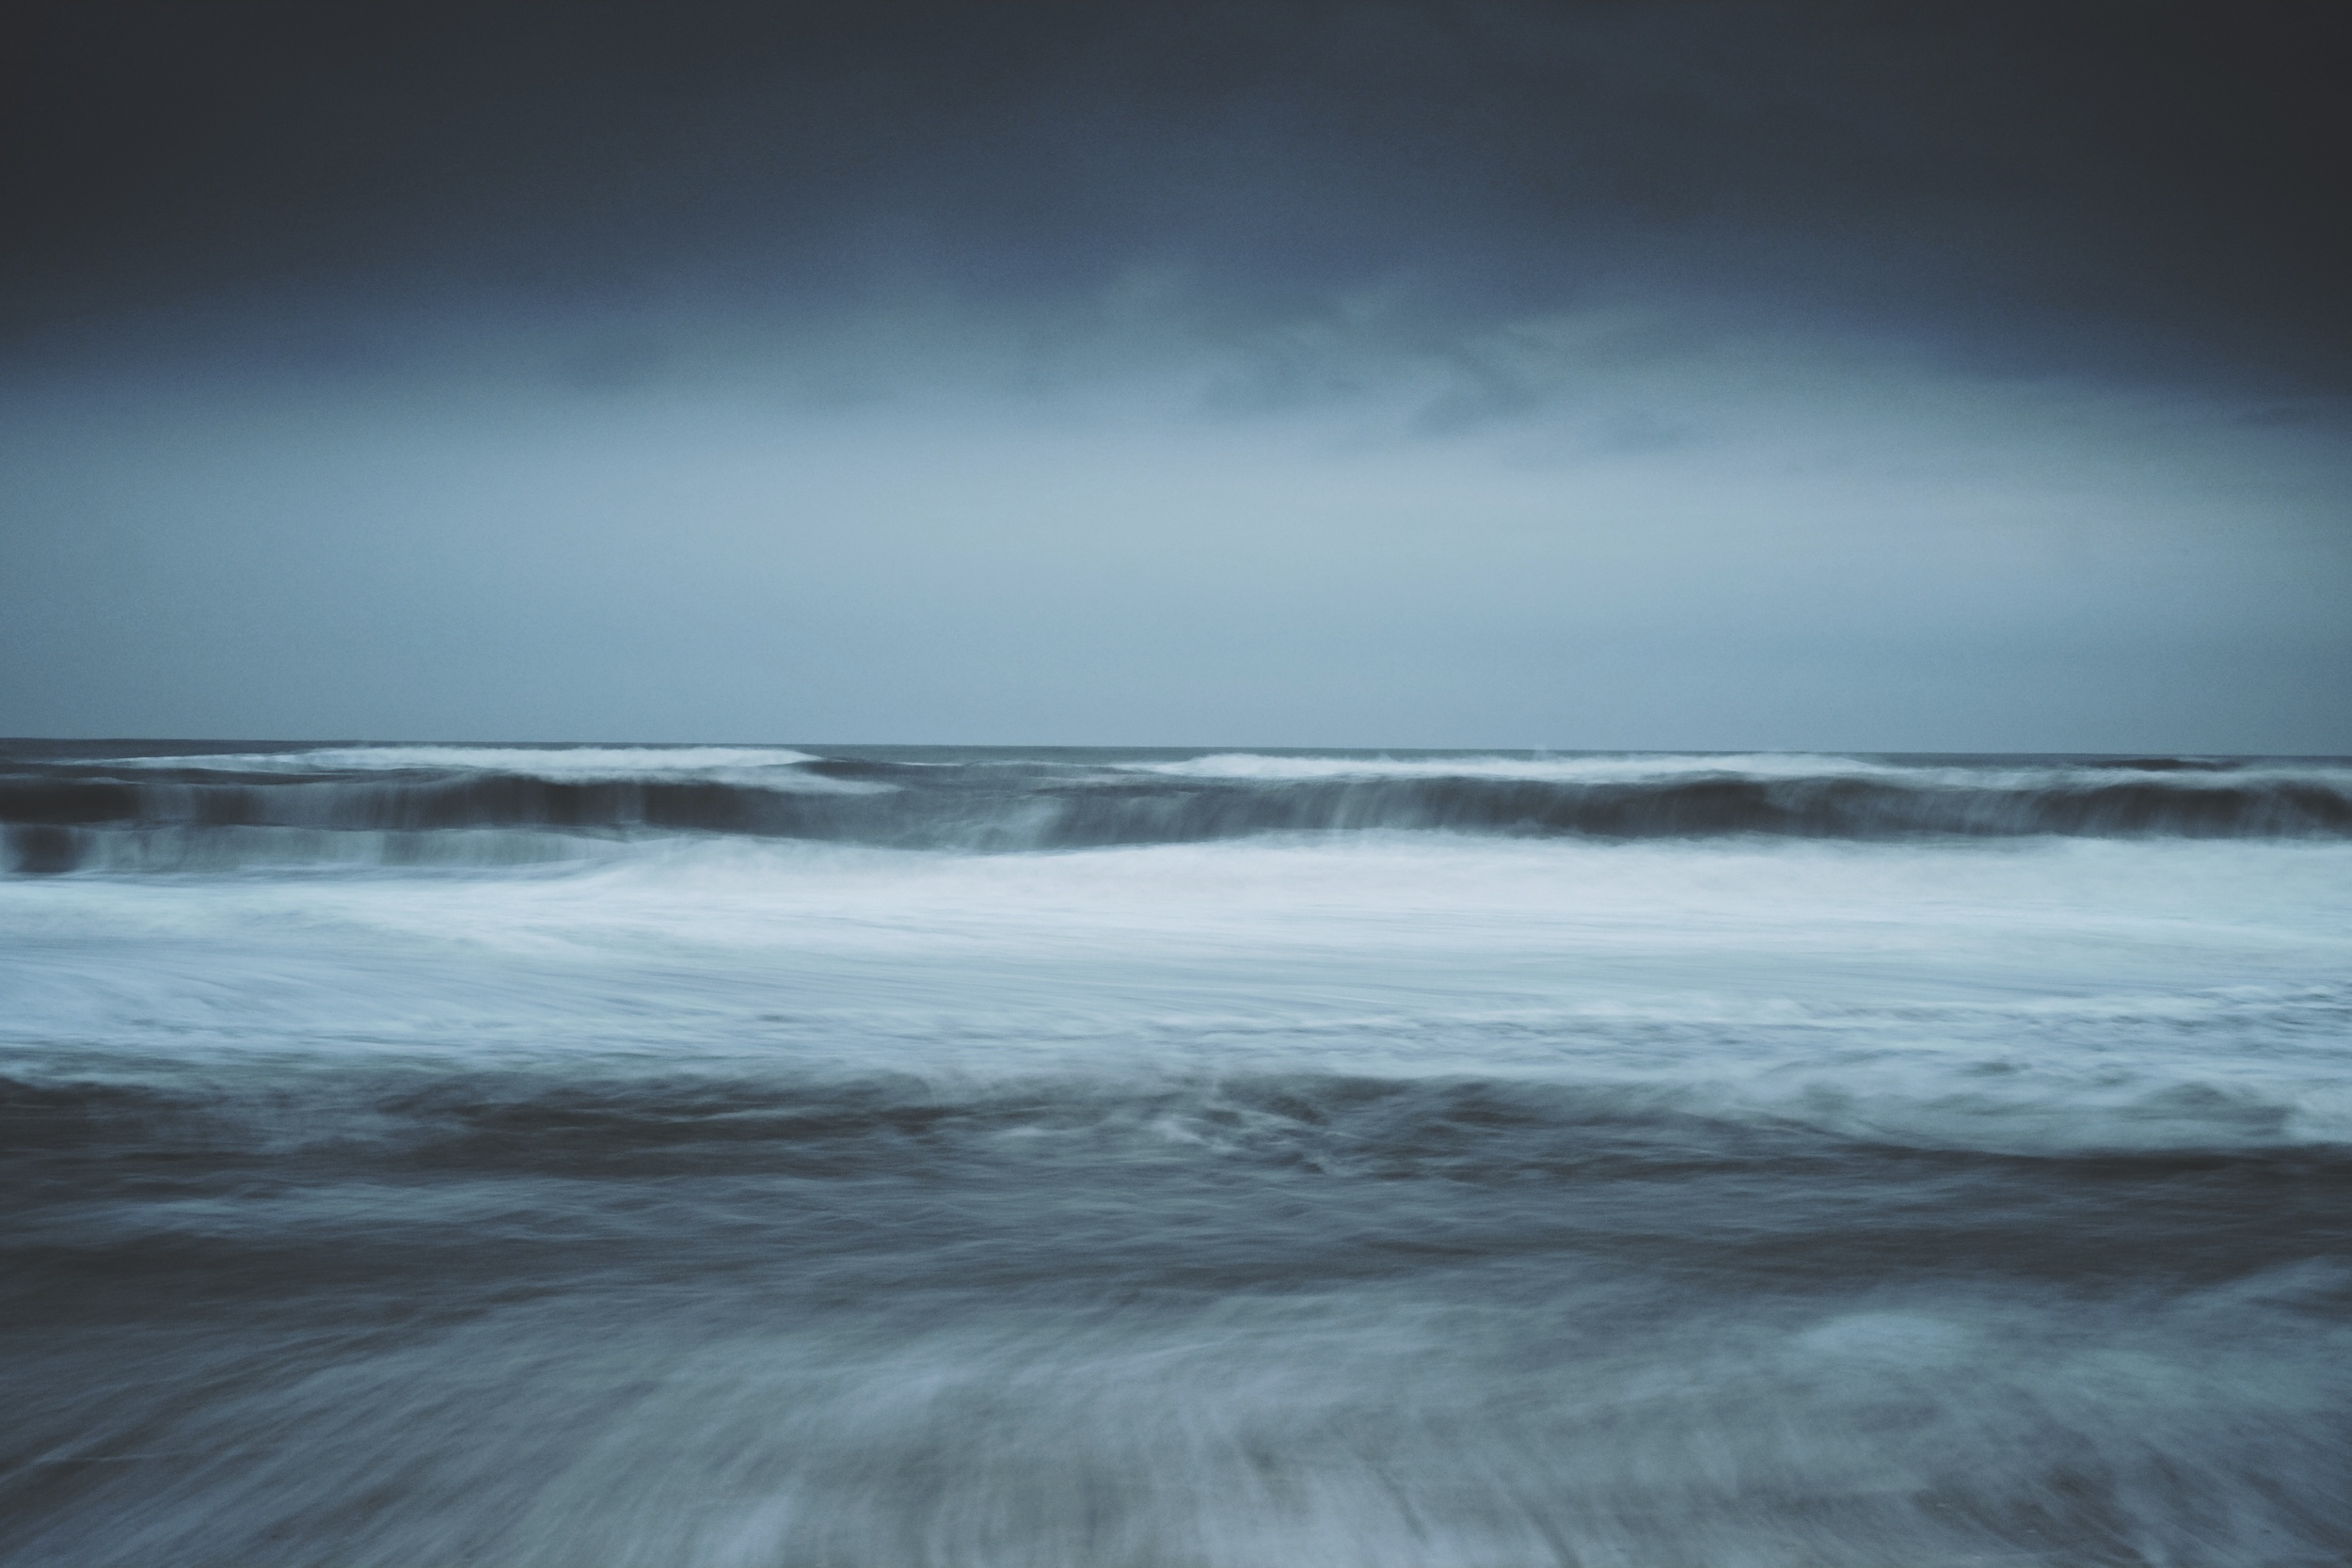 EXIF : ISO 200, f11, 3.2 seconds @ 35mm.  Filters : Big Stopper + .45 Hard Grad ND on sky.  Windy & gloomy afternoon on the ocean.